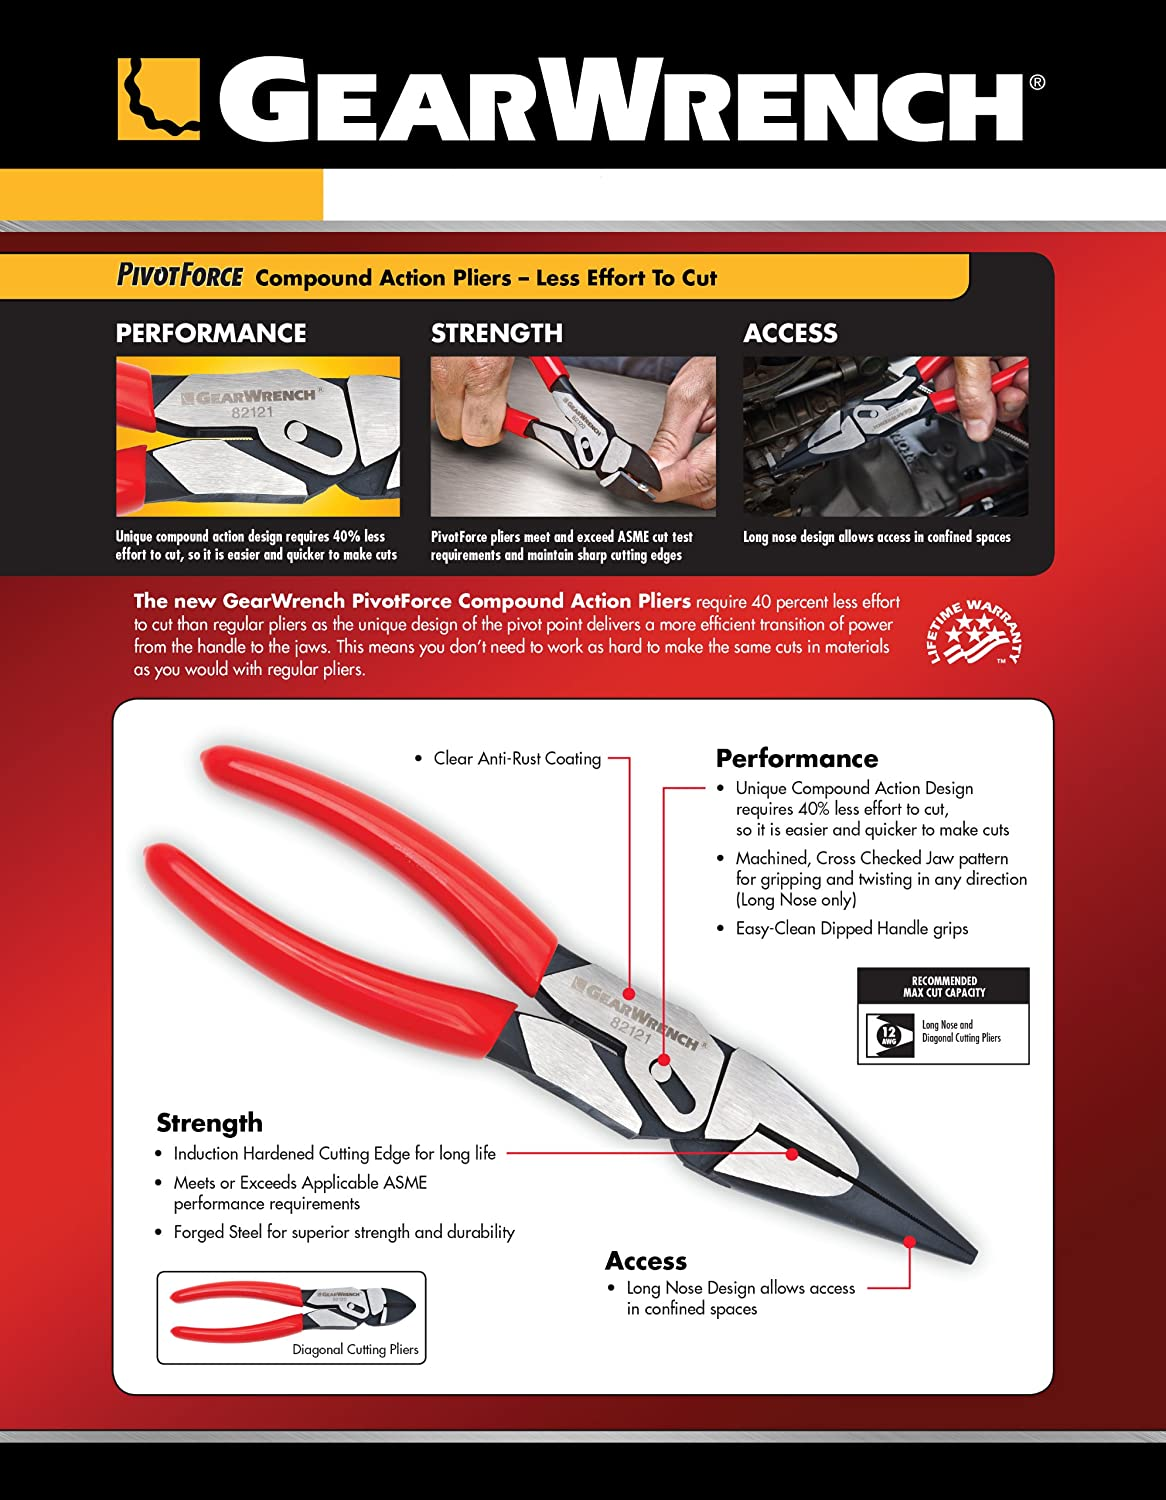 GearWrench 82121 8 PivotForce Long Nose Cutting Compound Action Plier